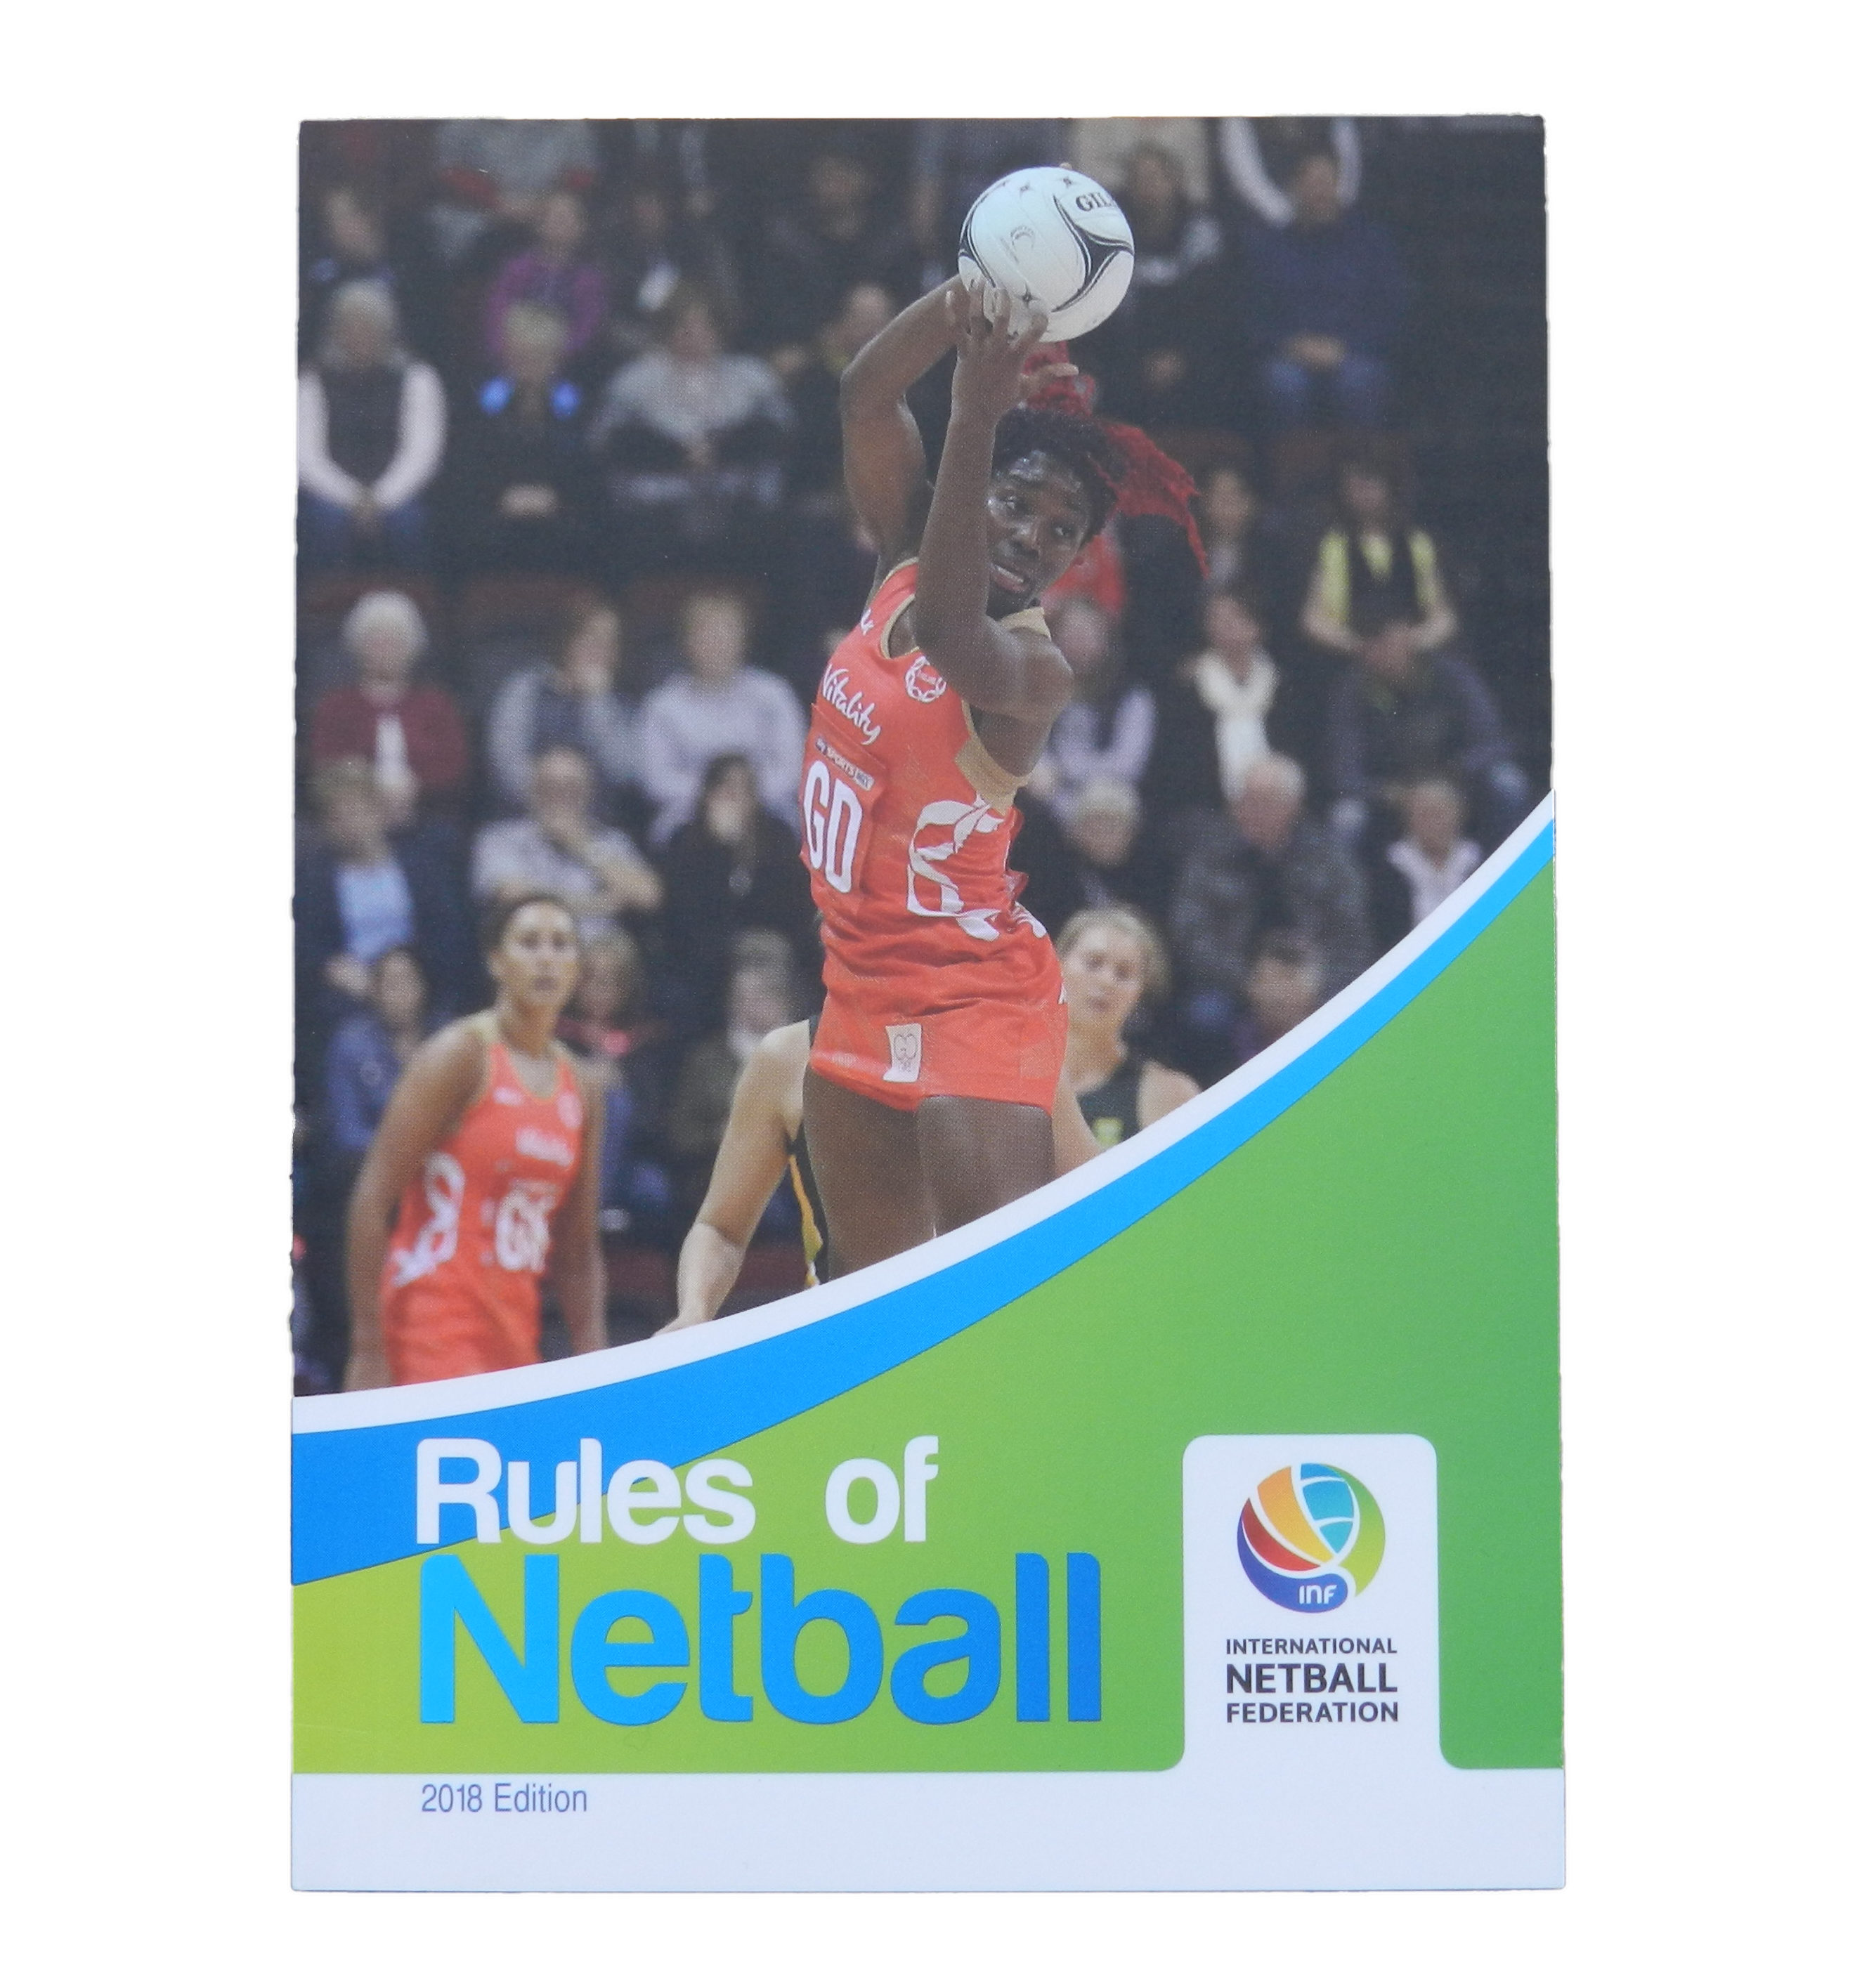 a2a24f9f1a7 RULES OF NETBALL BOOK 2018 EDITION